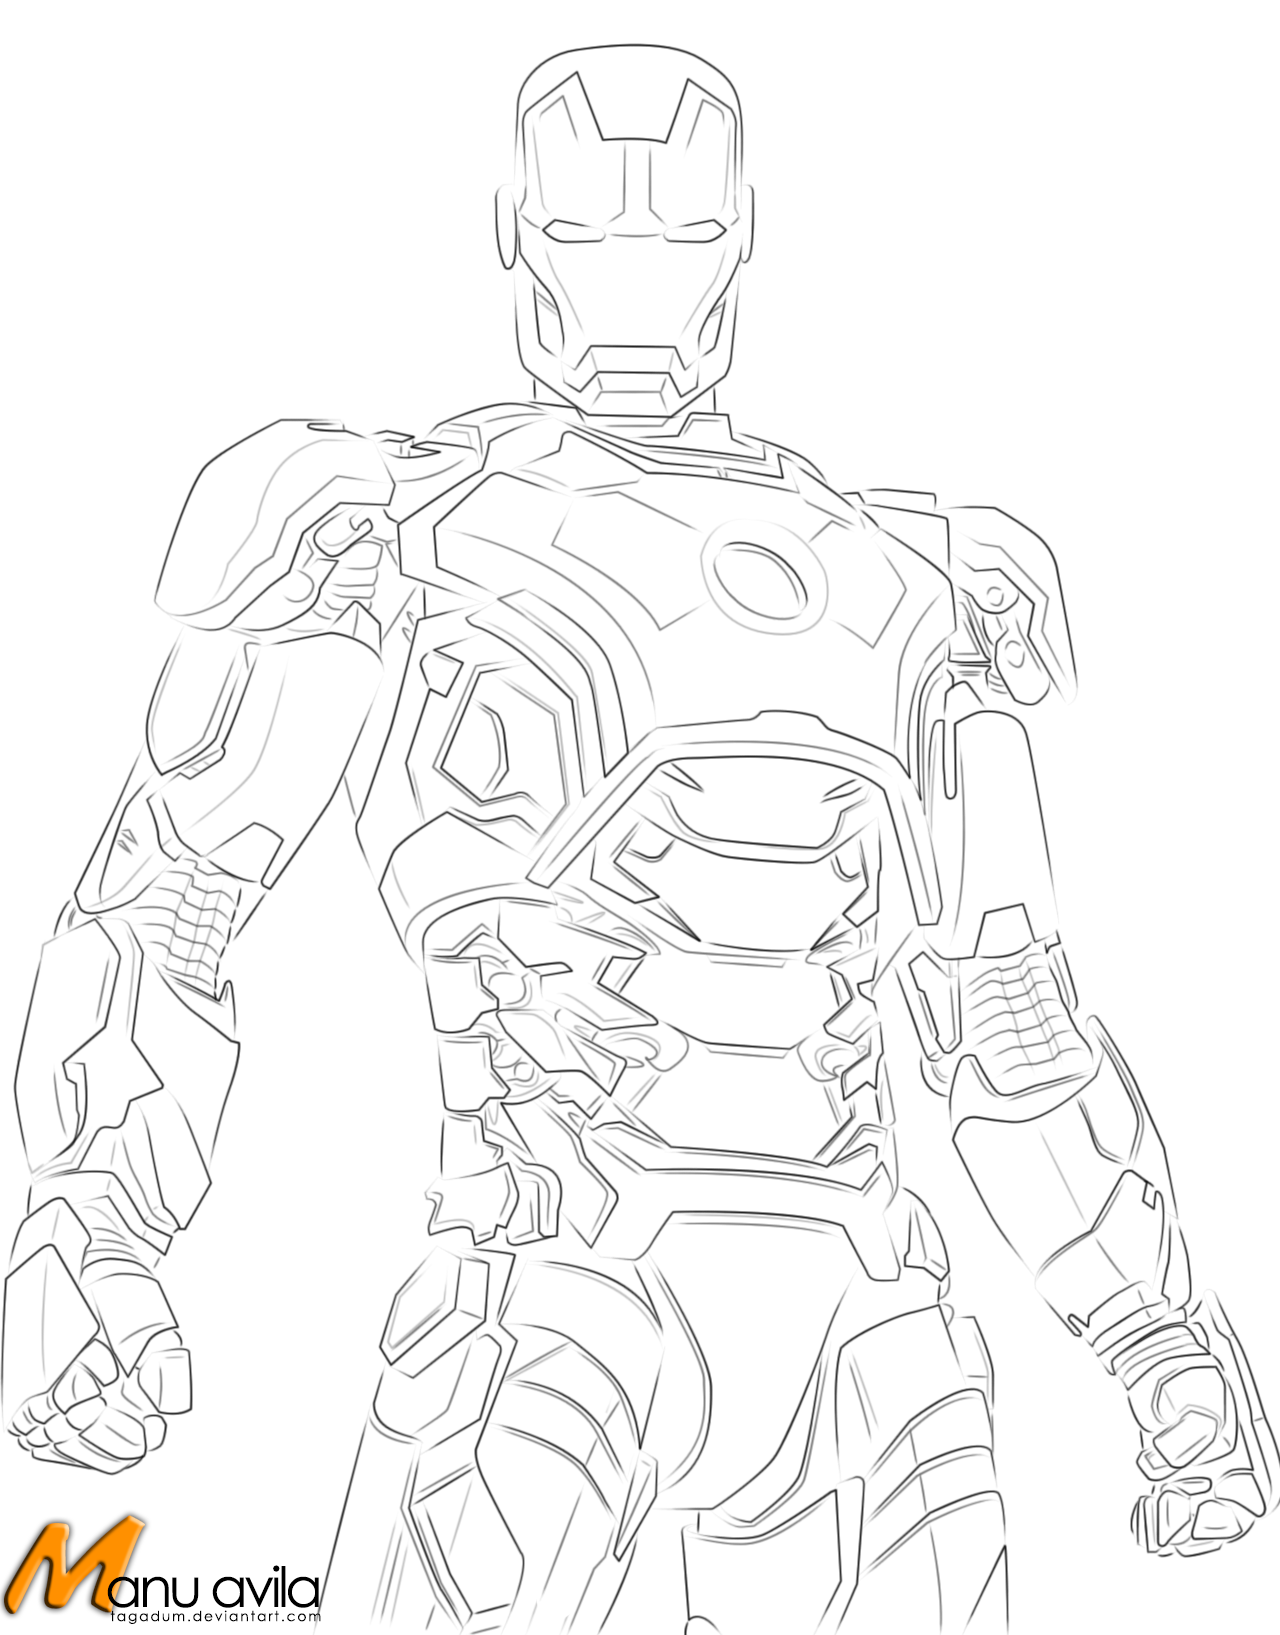 mark 42 coloring pages - photo#4